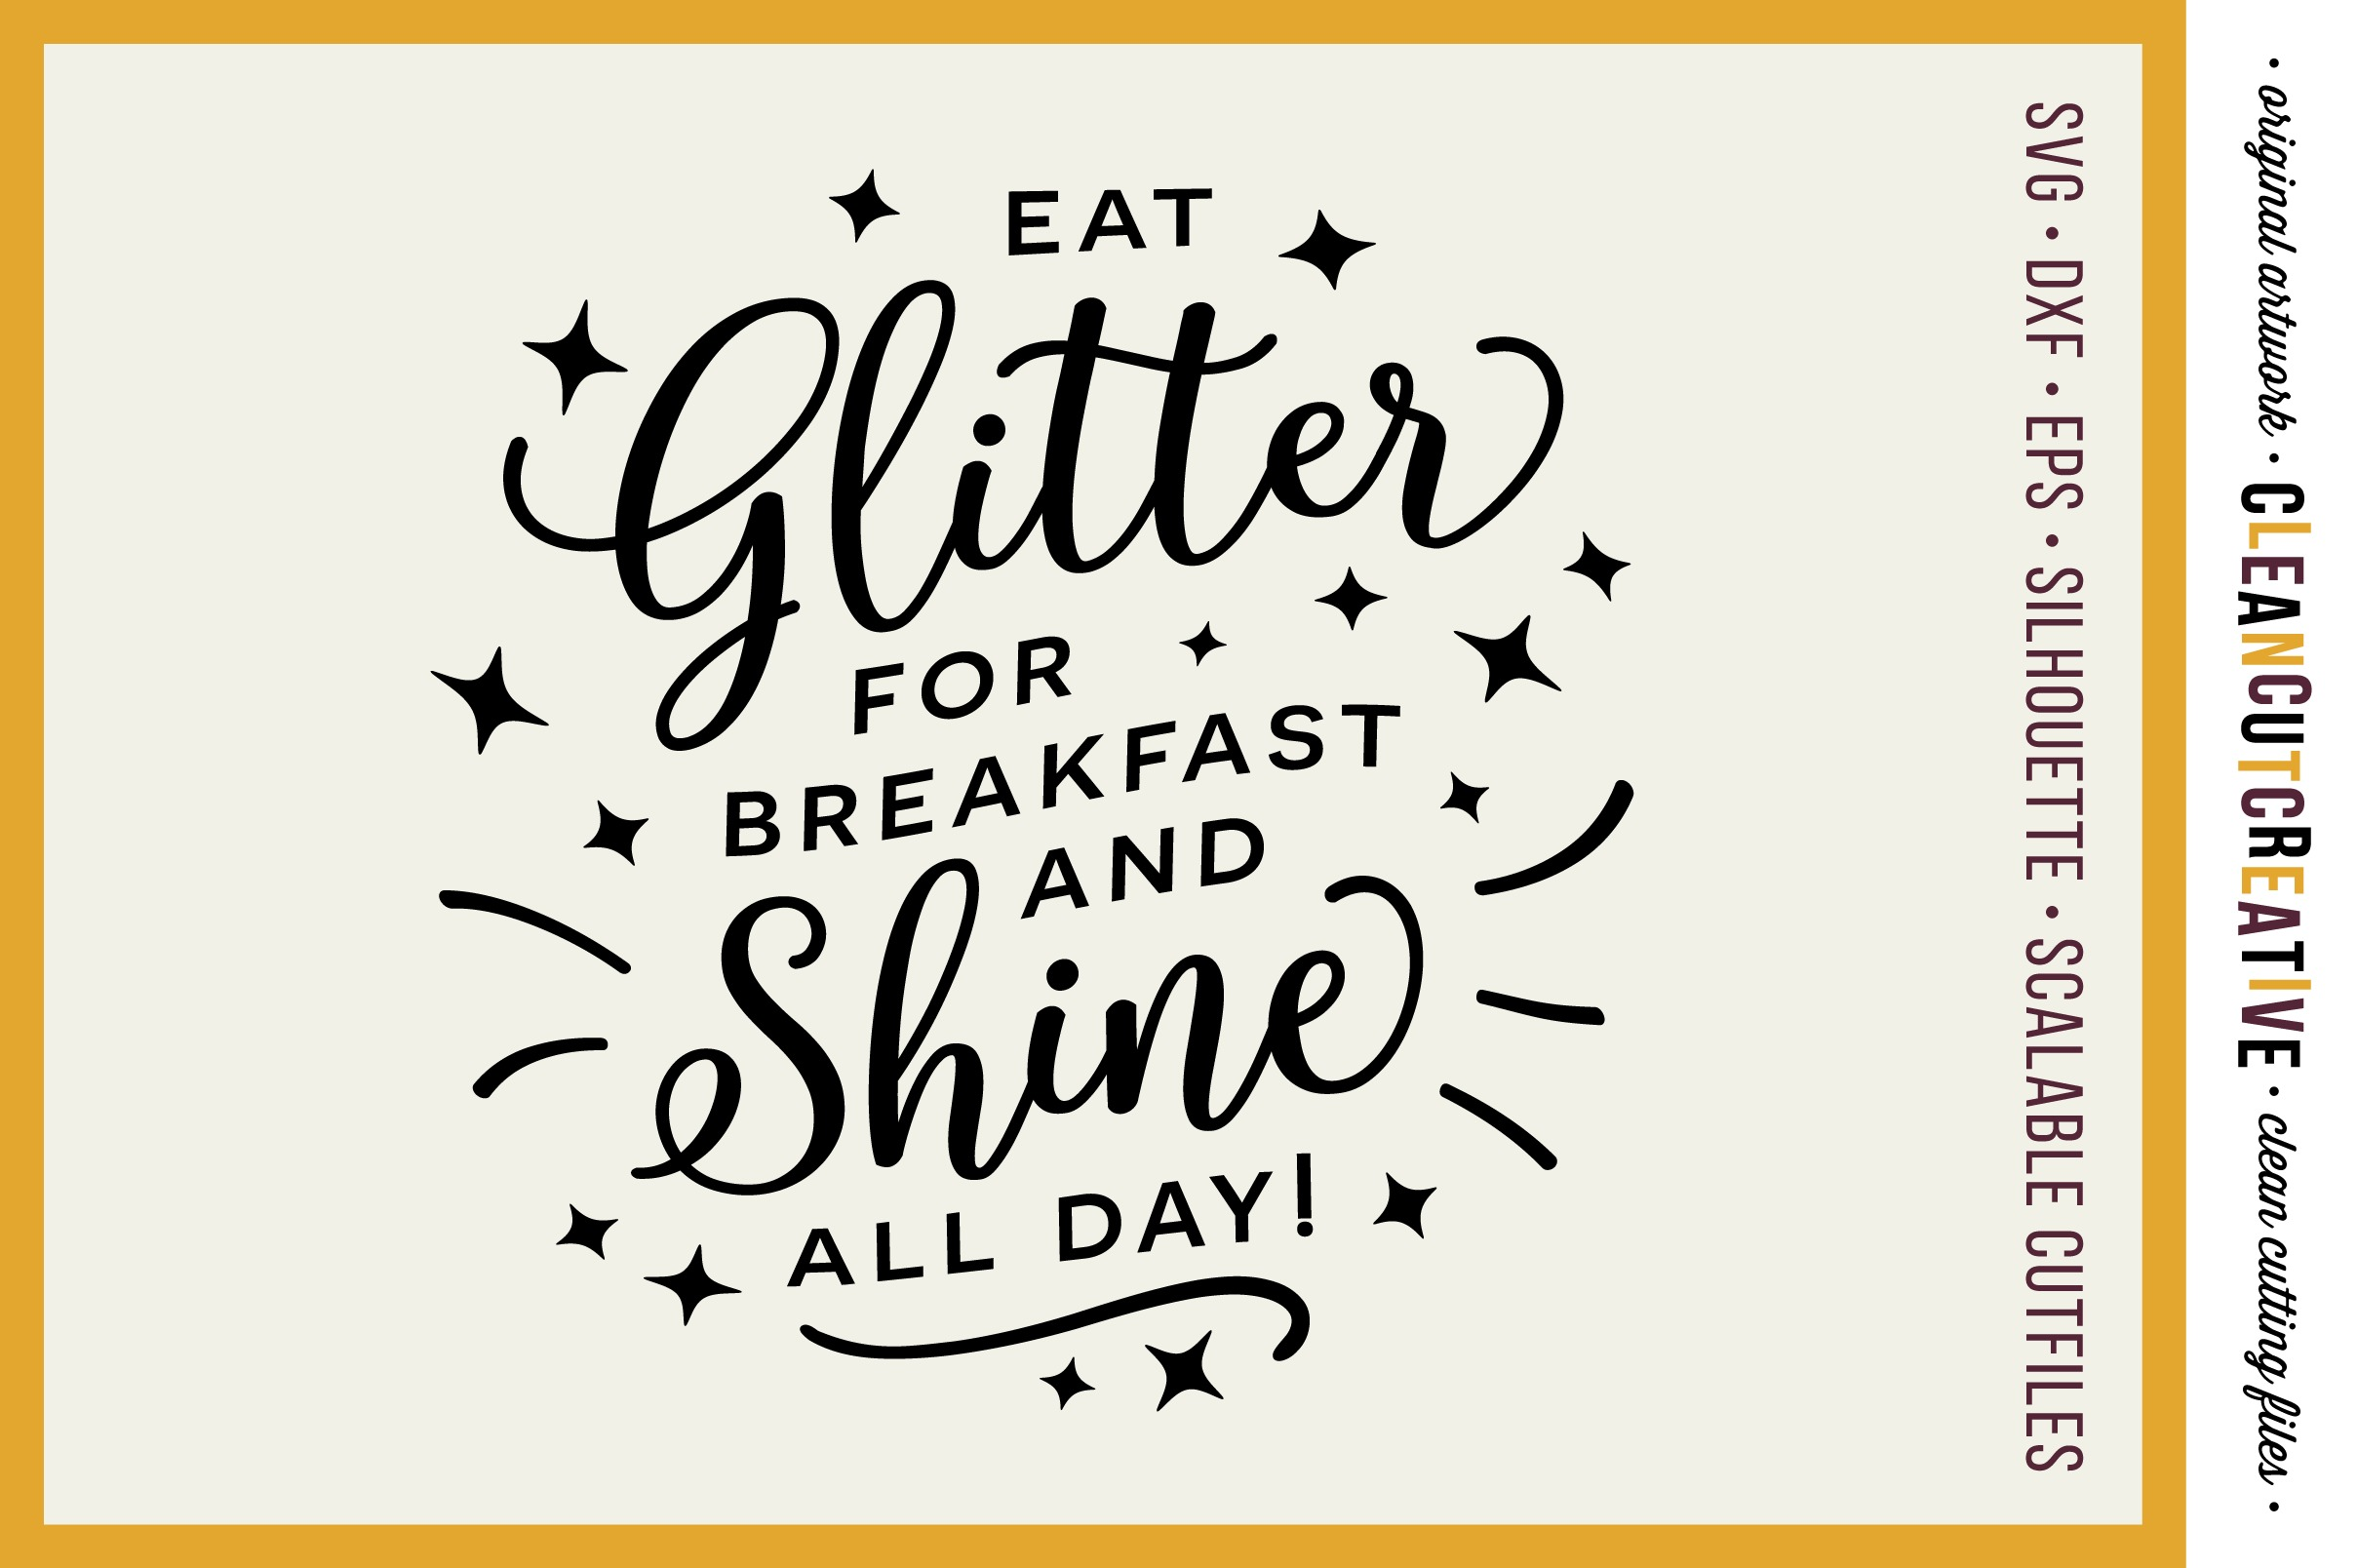 EAT GLITTER FOR BREAKFAST AND SHINE ALL DAY! - SVG cut file example image 1